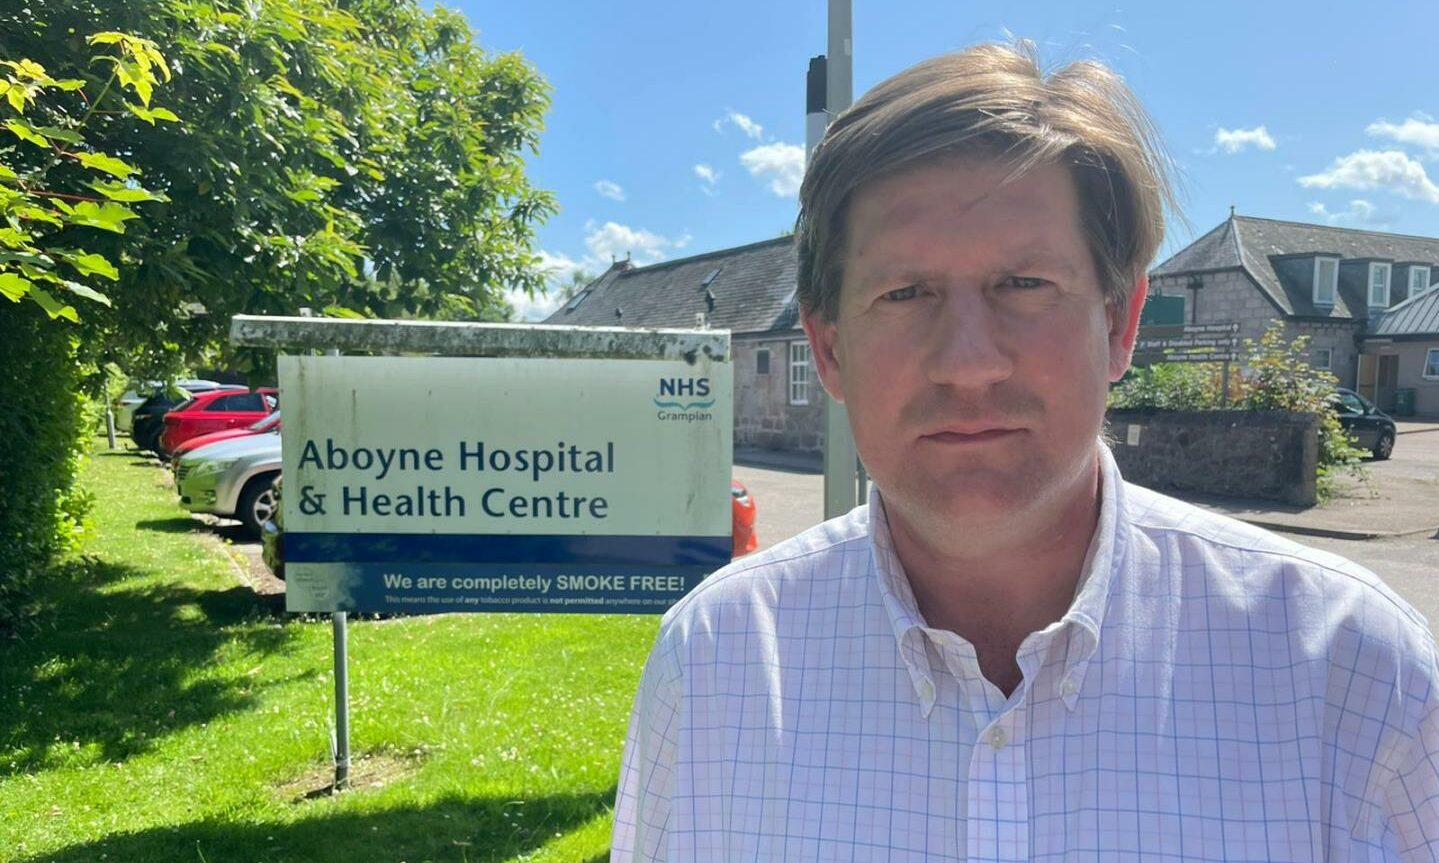 Alexander Burnett has signed a joint letter from Friends of Aboyne Hospital, asking for information about the upcoming strategic needs assessment amid fears it is threatened by closure.